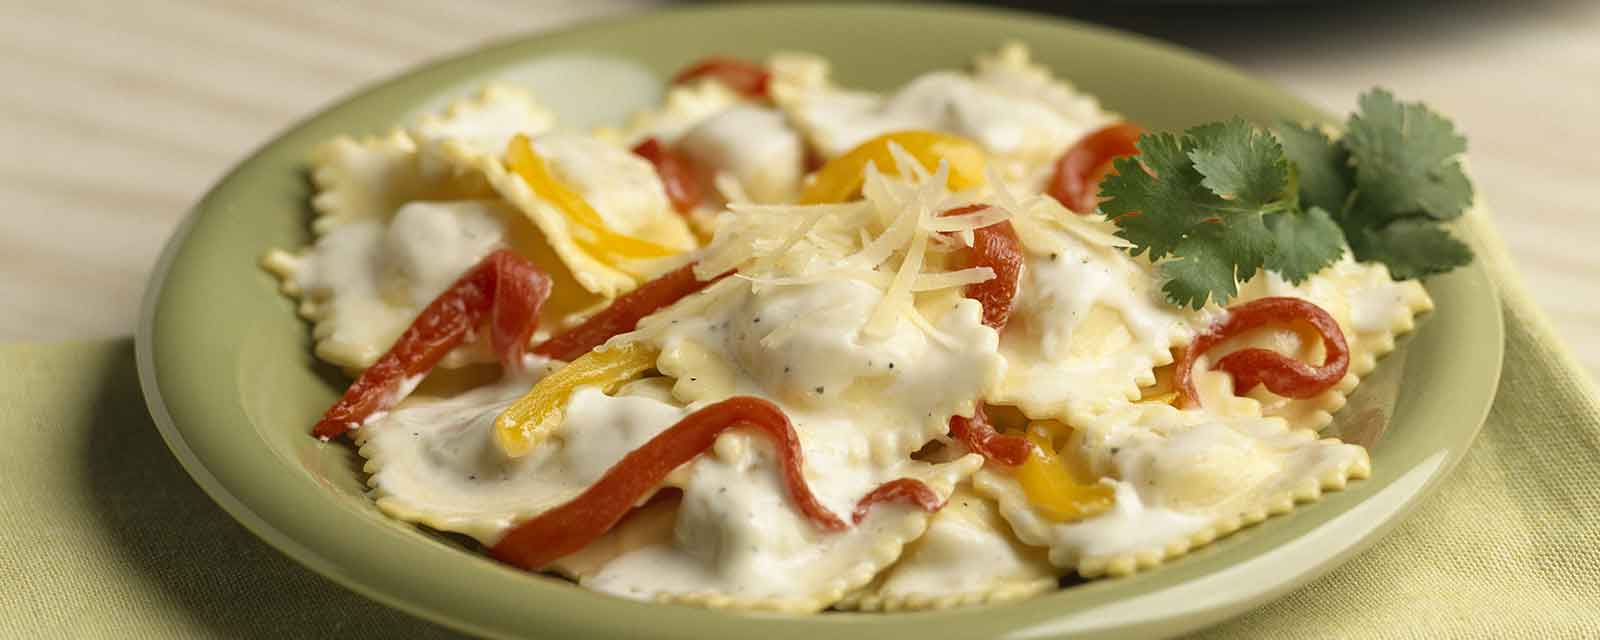 Creamy Ravioli with Roasted Peppers